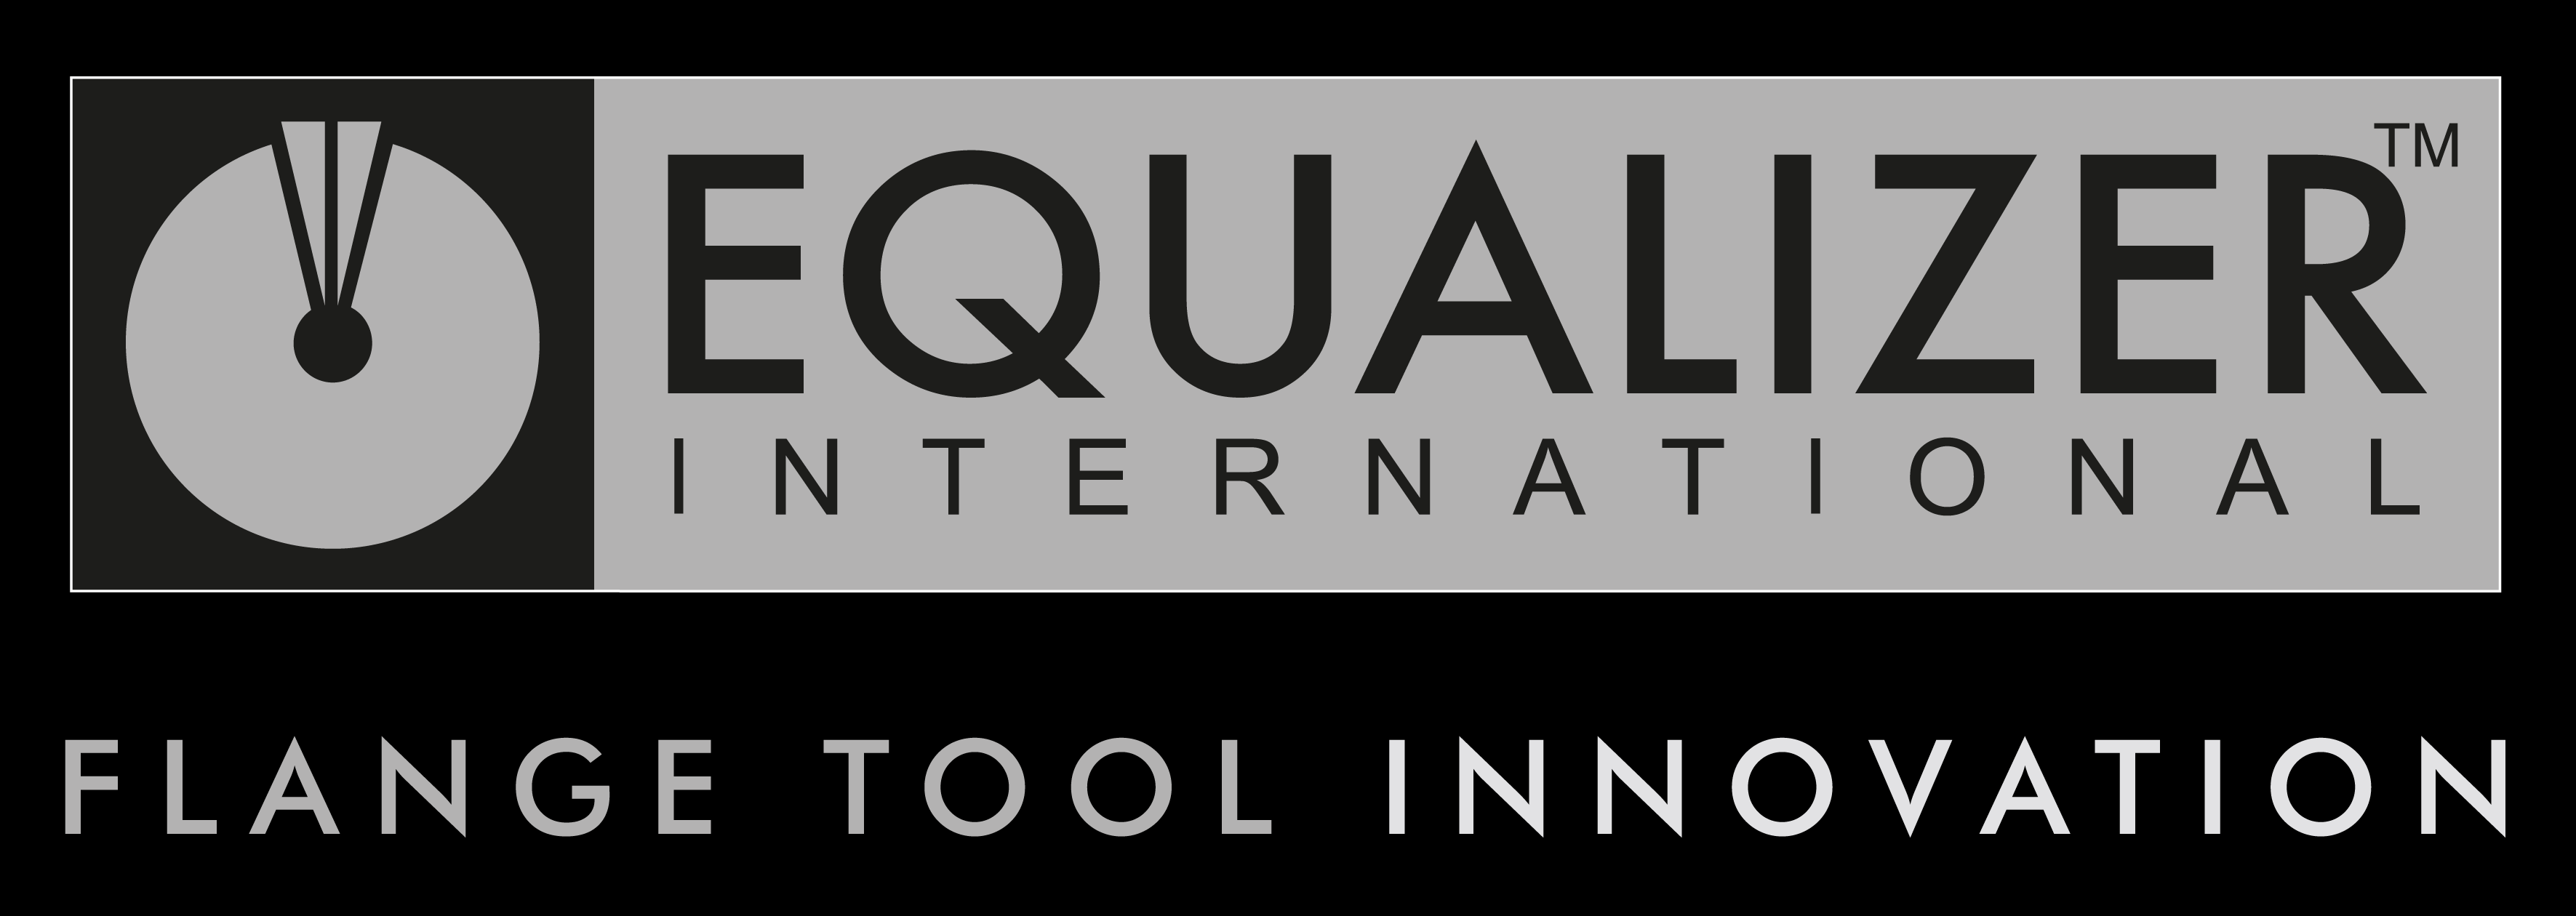 Equalizer_Logo__Flange_Tool_Innovation_on_black_rev01